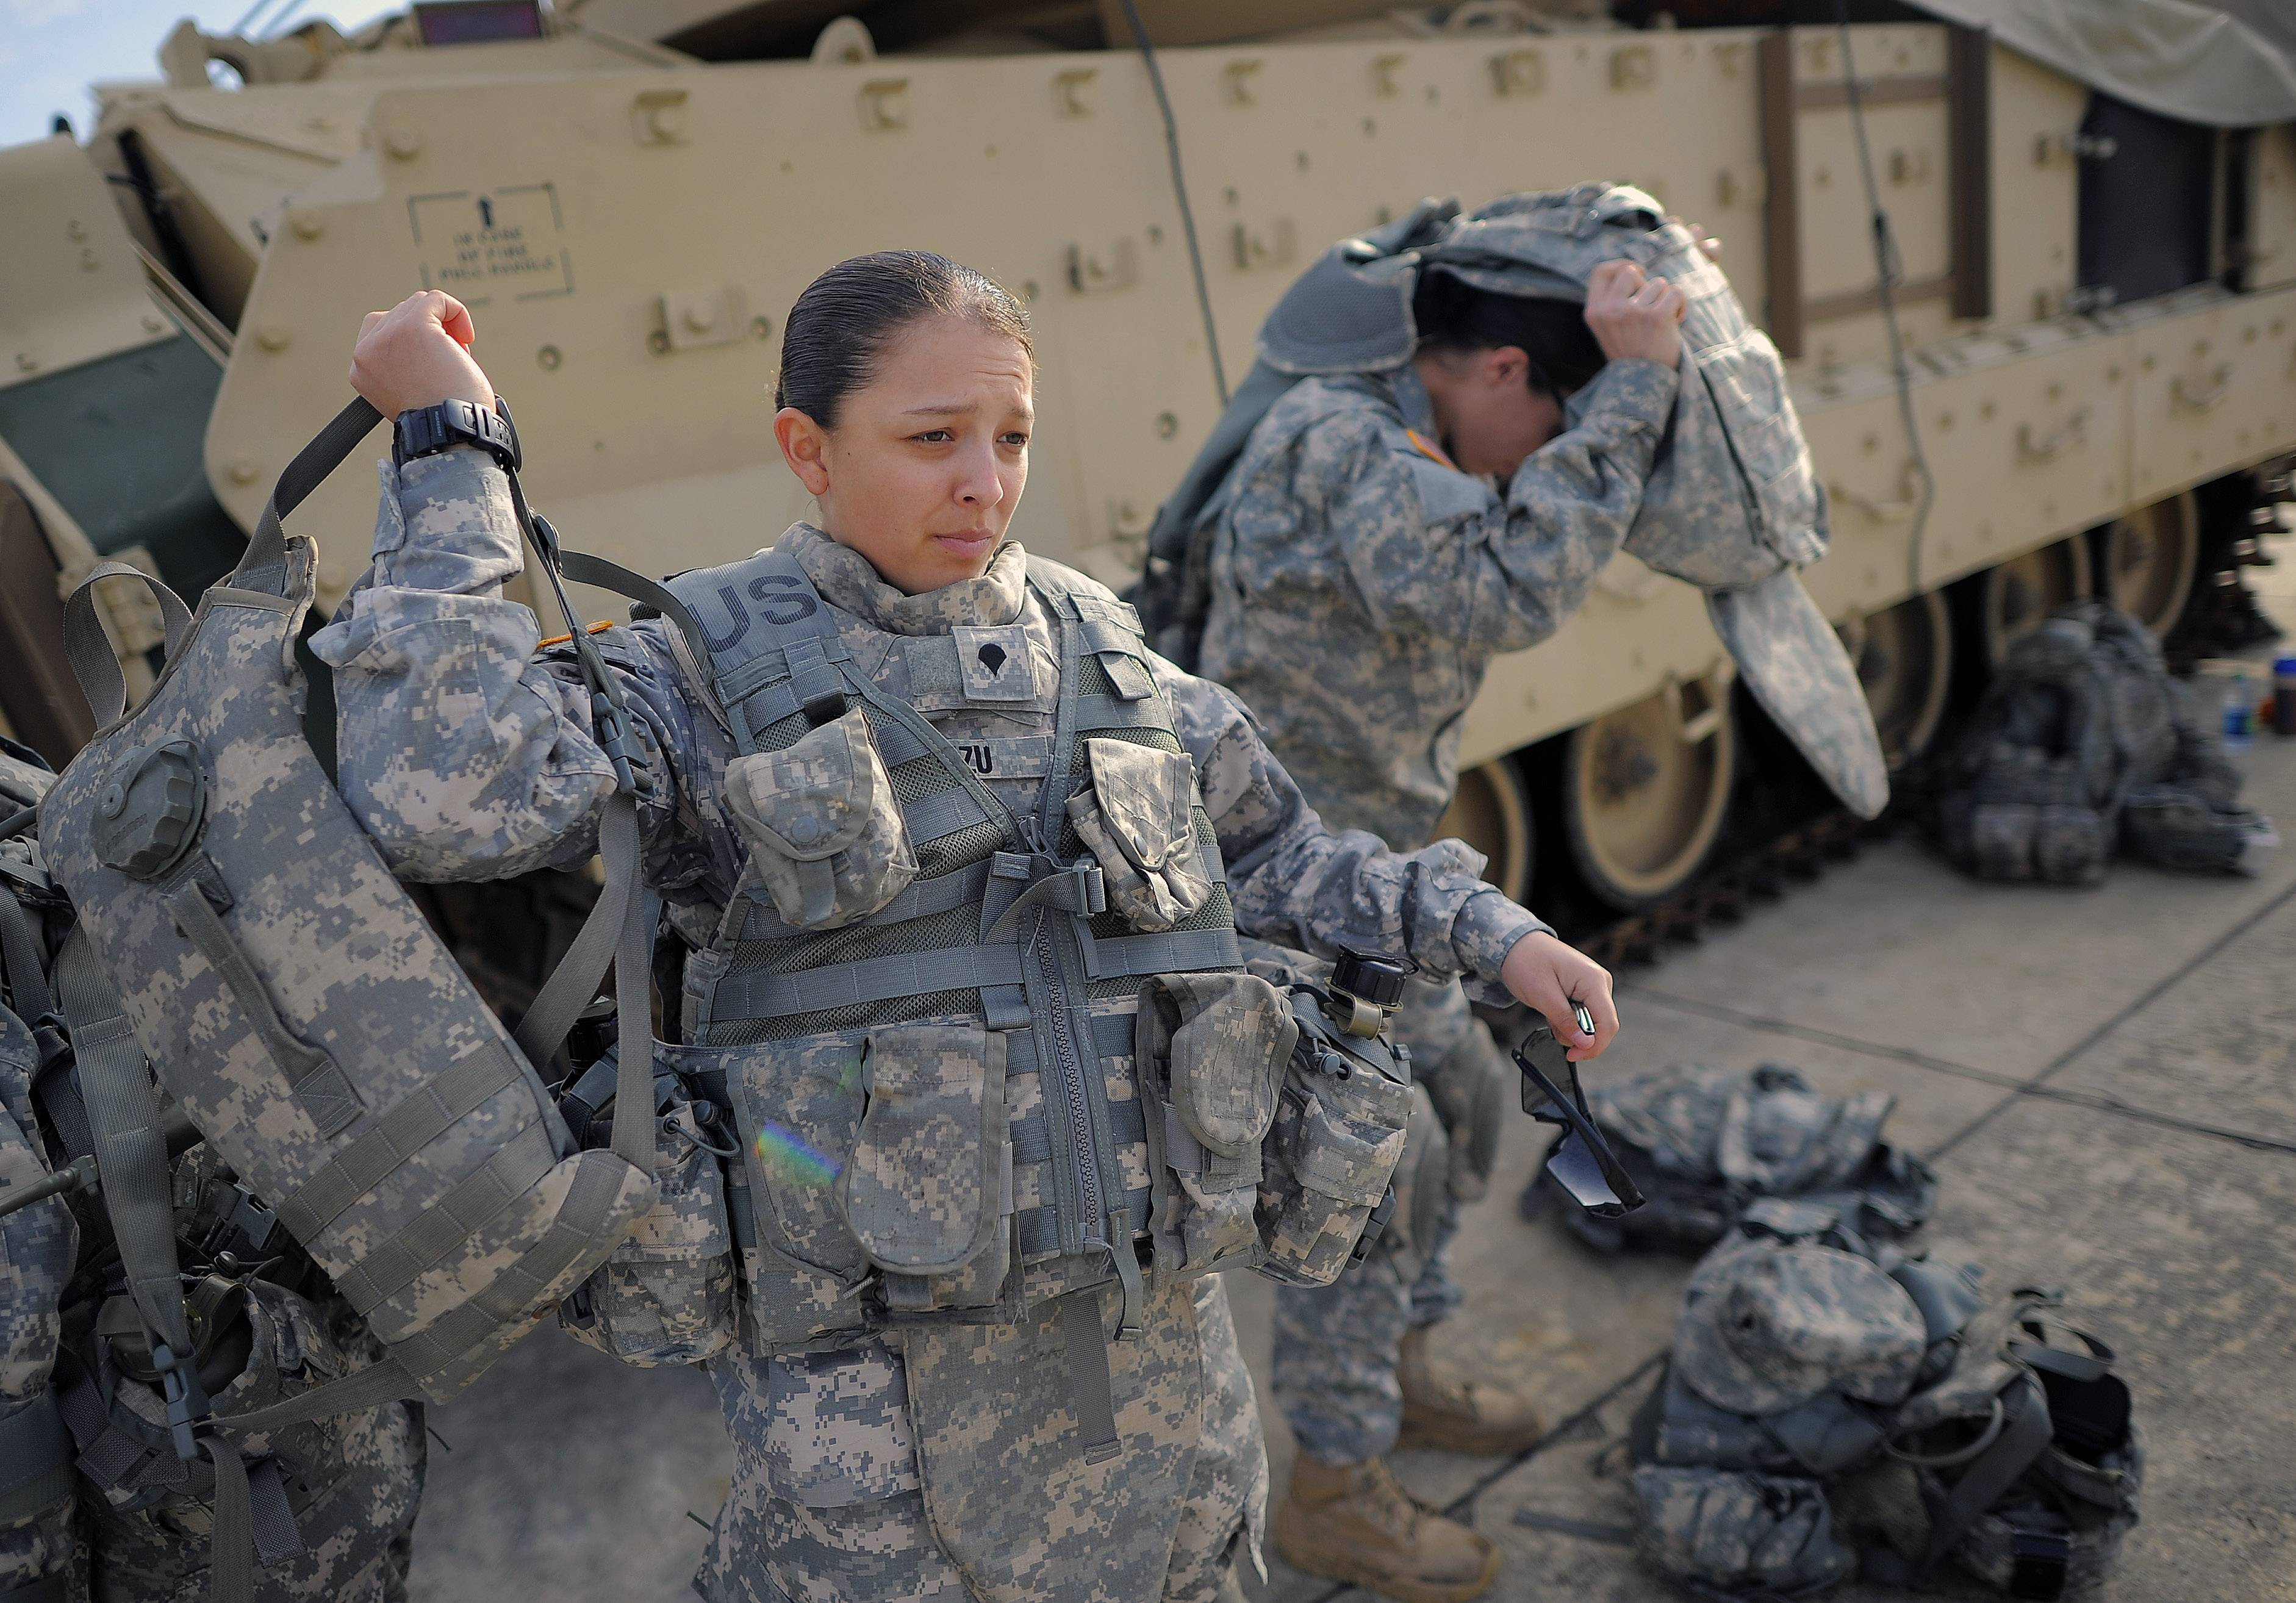 Spc. Karen Arvizu, left, puts on her hydration pack as part of an Army study to determine how all soldiers, including women, will be deemed fit to join its fighting units.